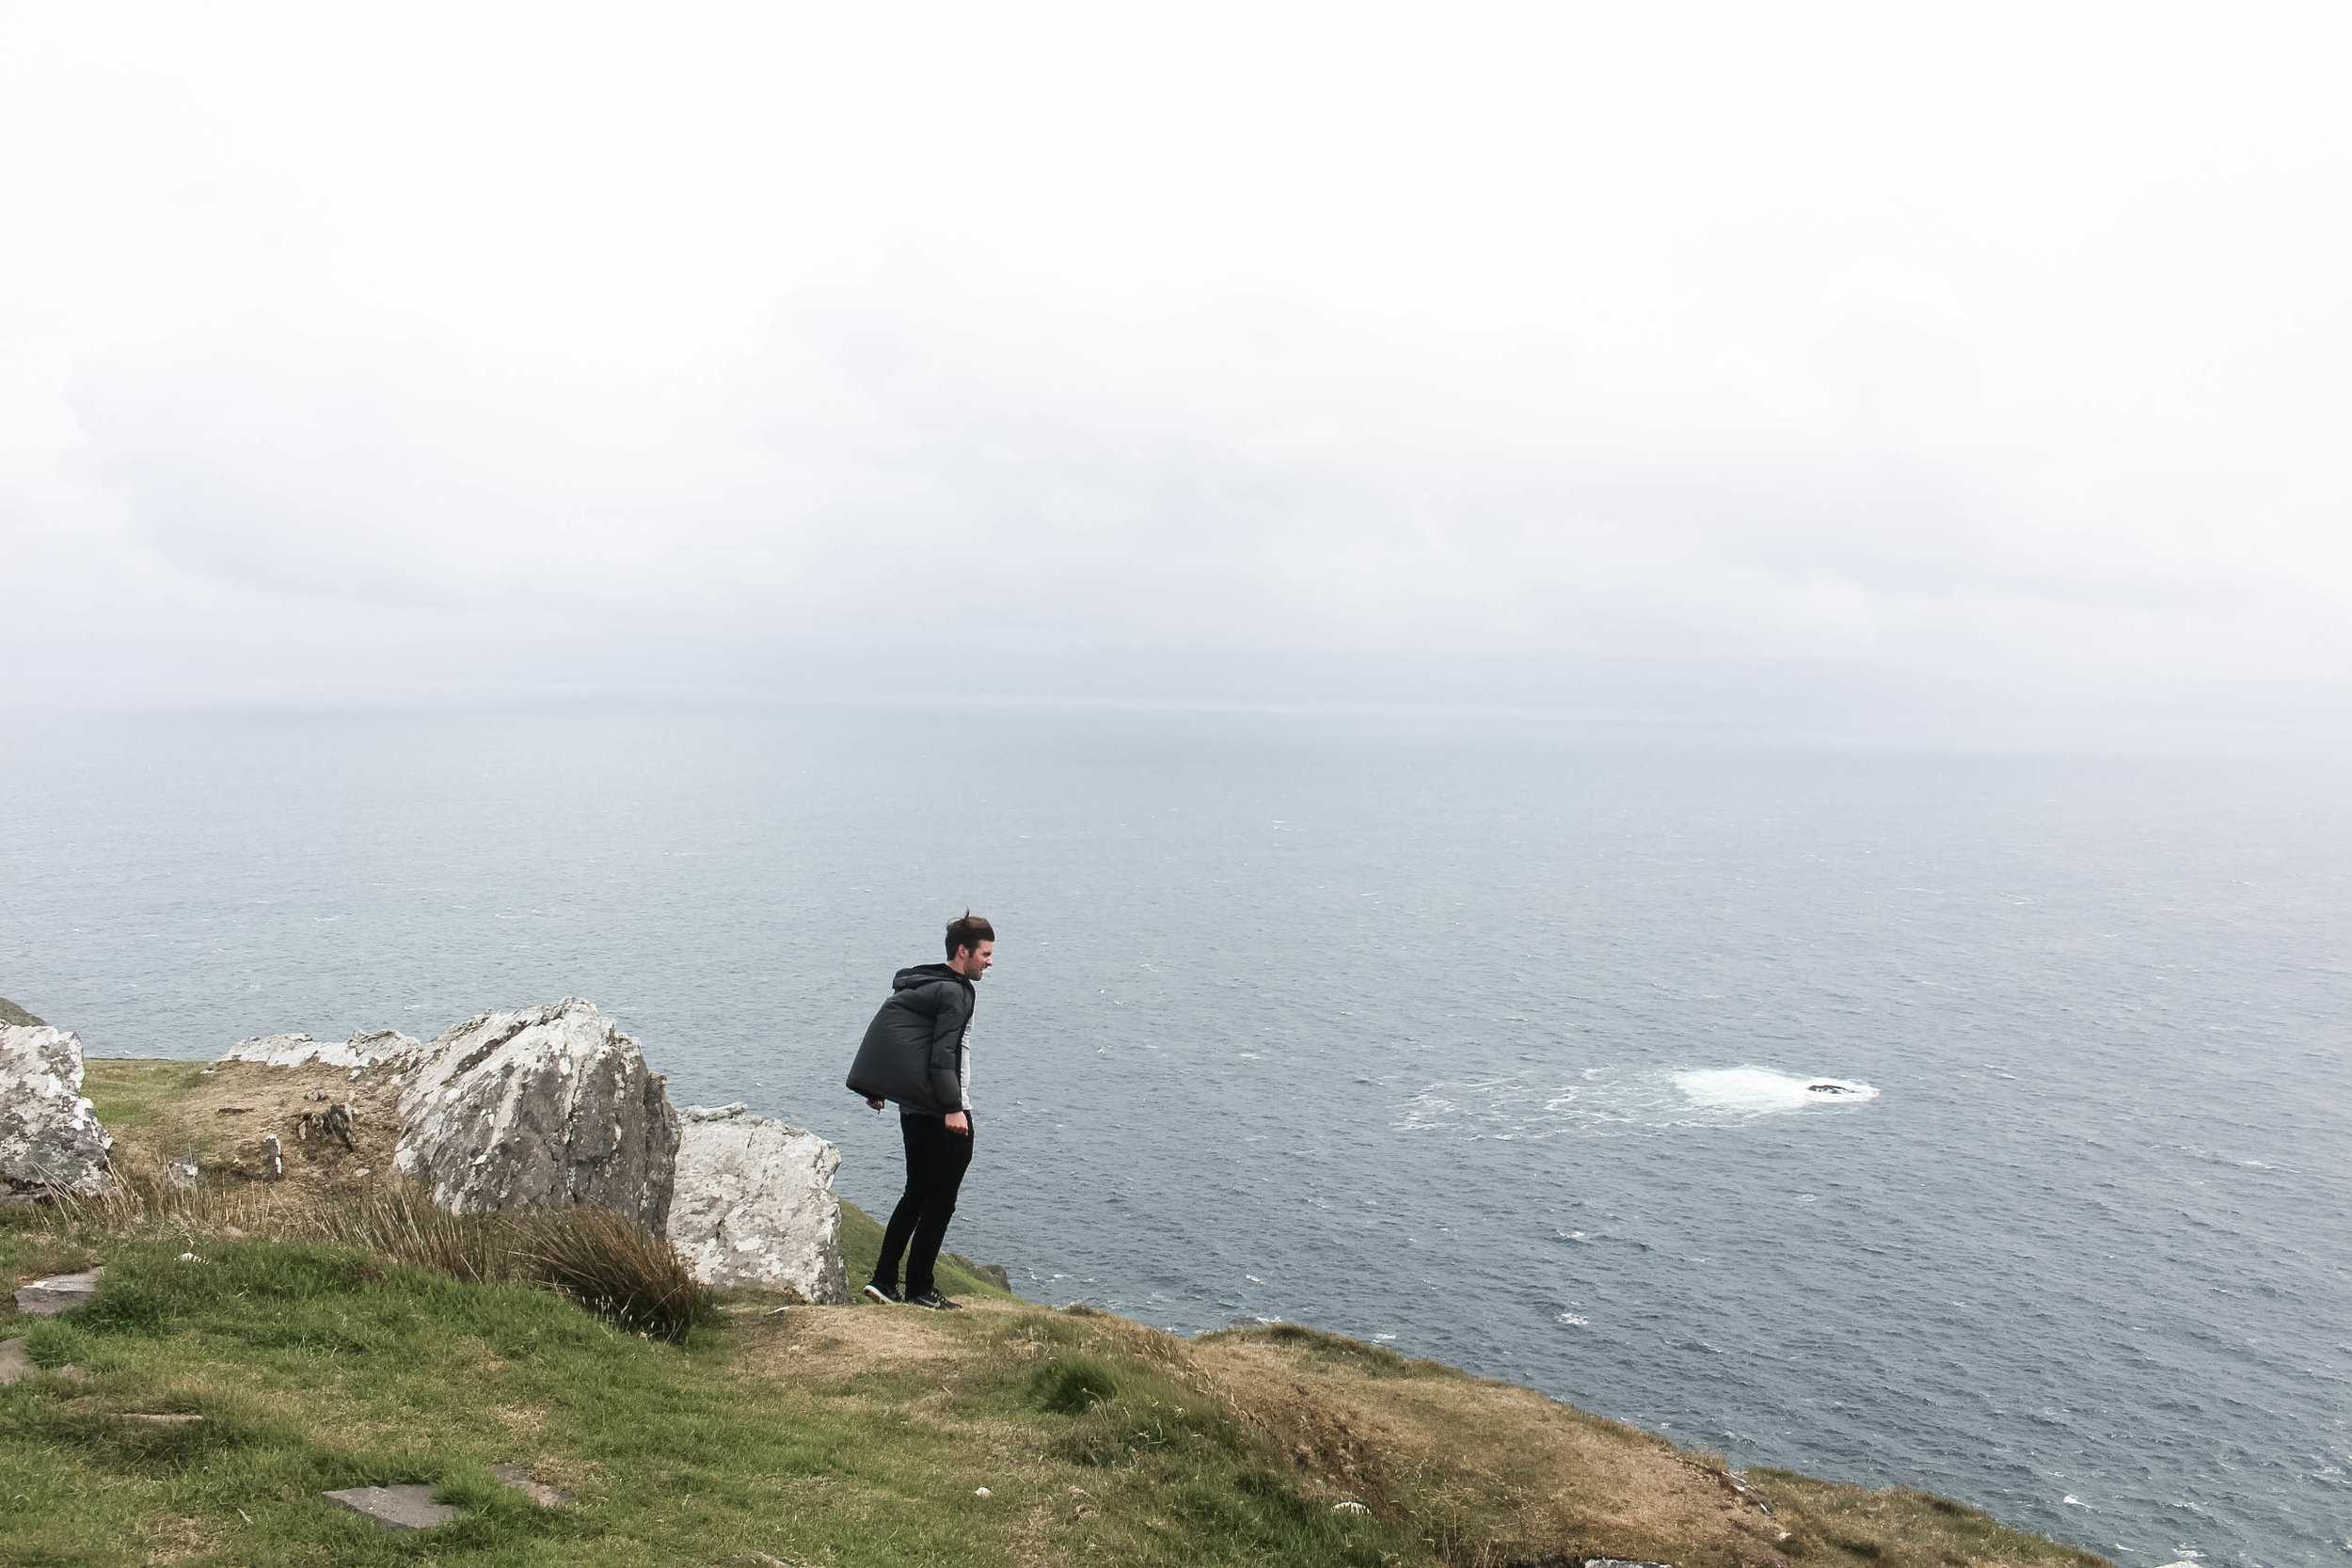 Things to do in Ireland in a week - Dingle Peninsula, Eask Tower